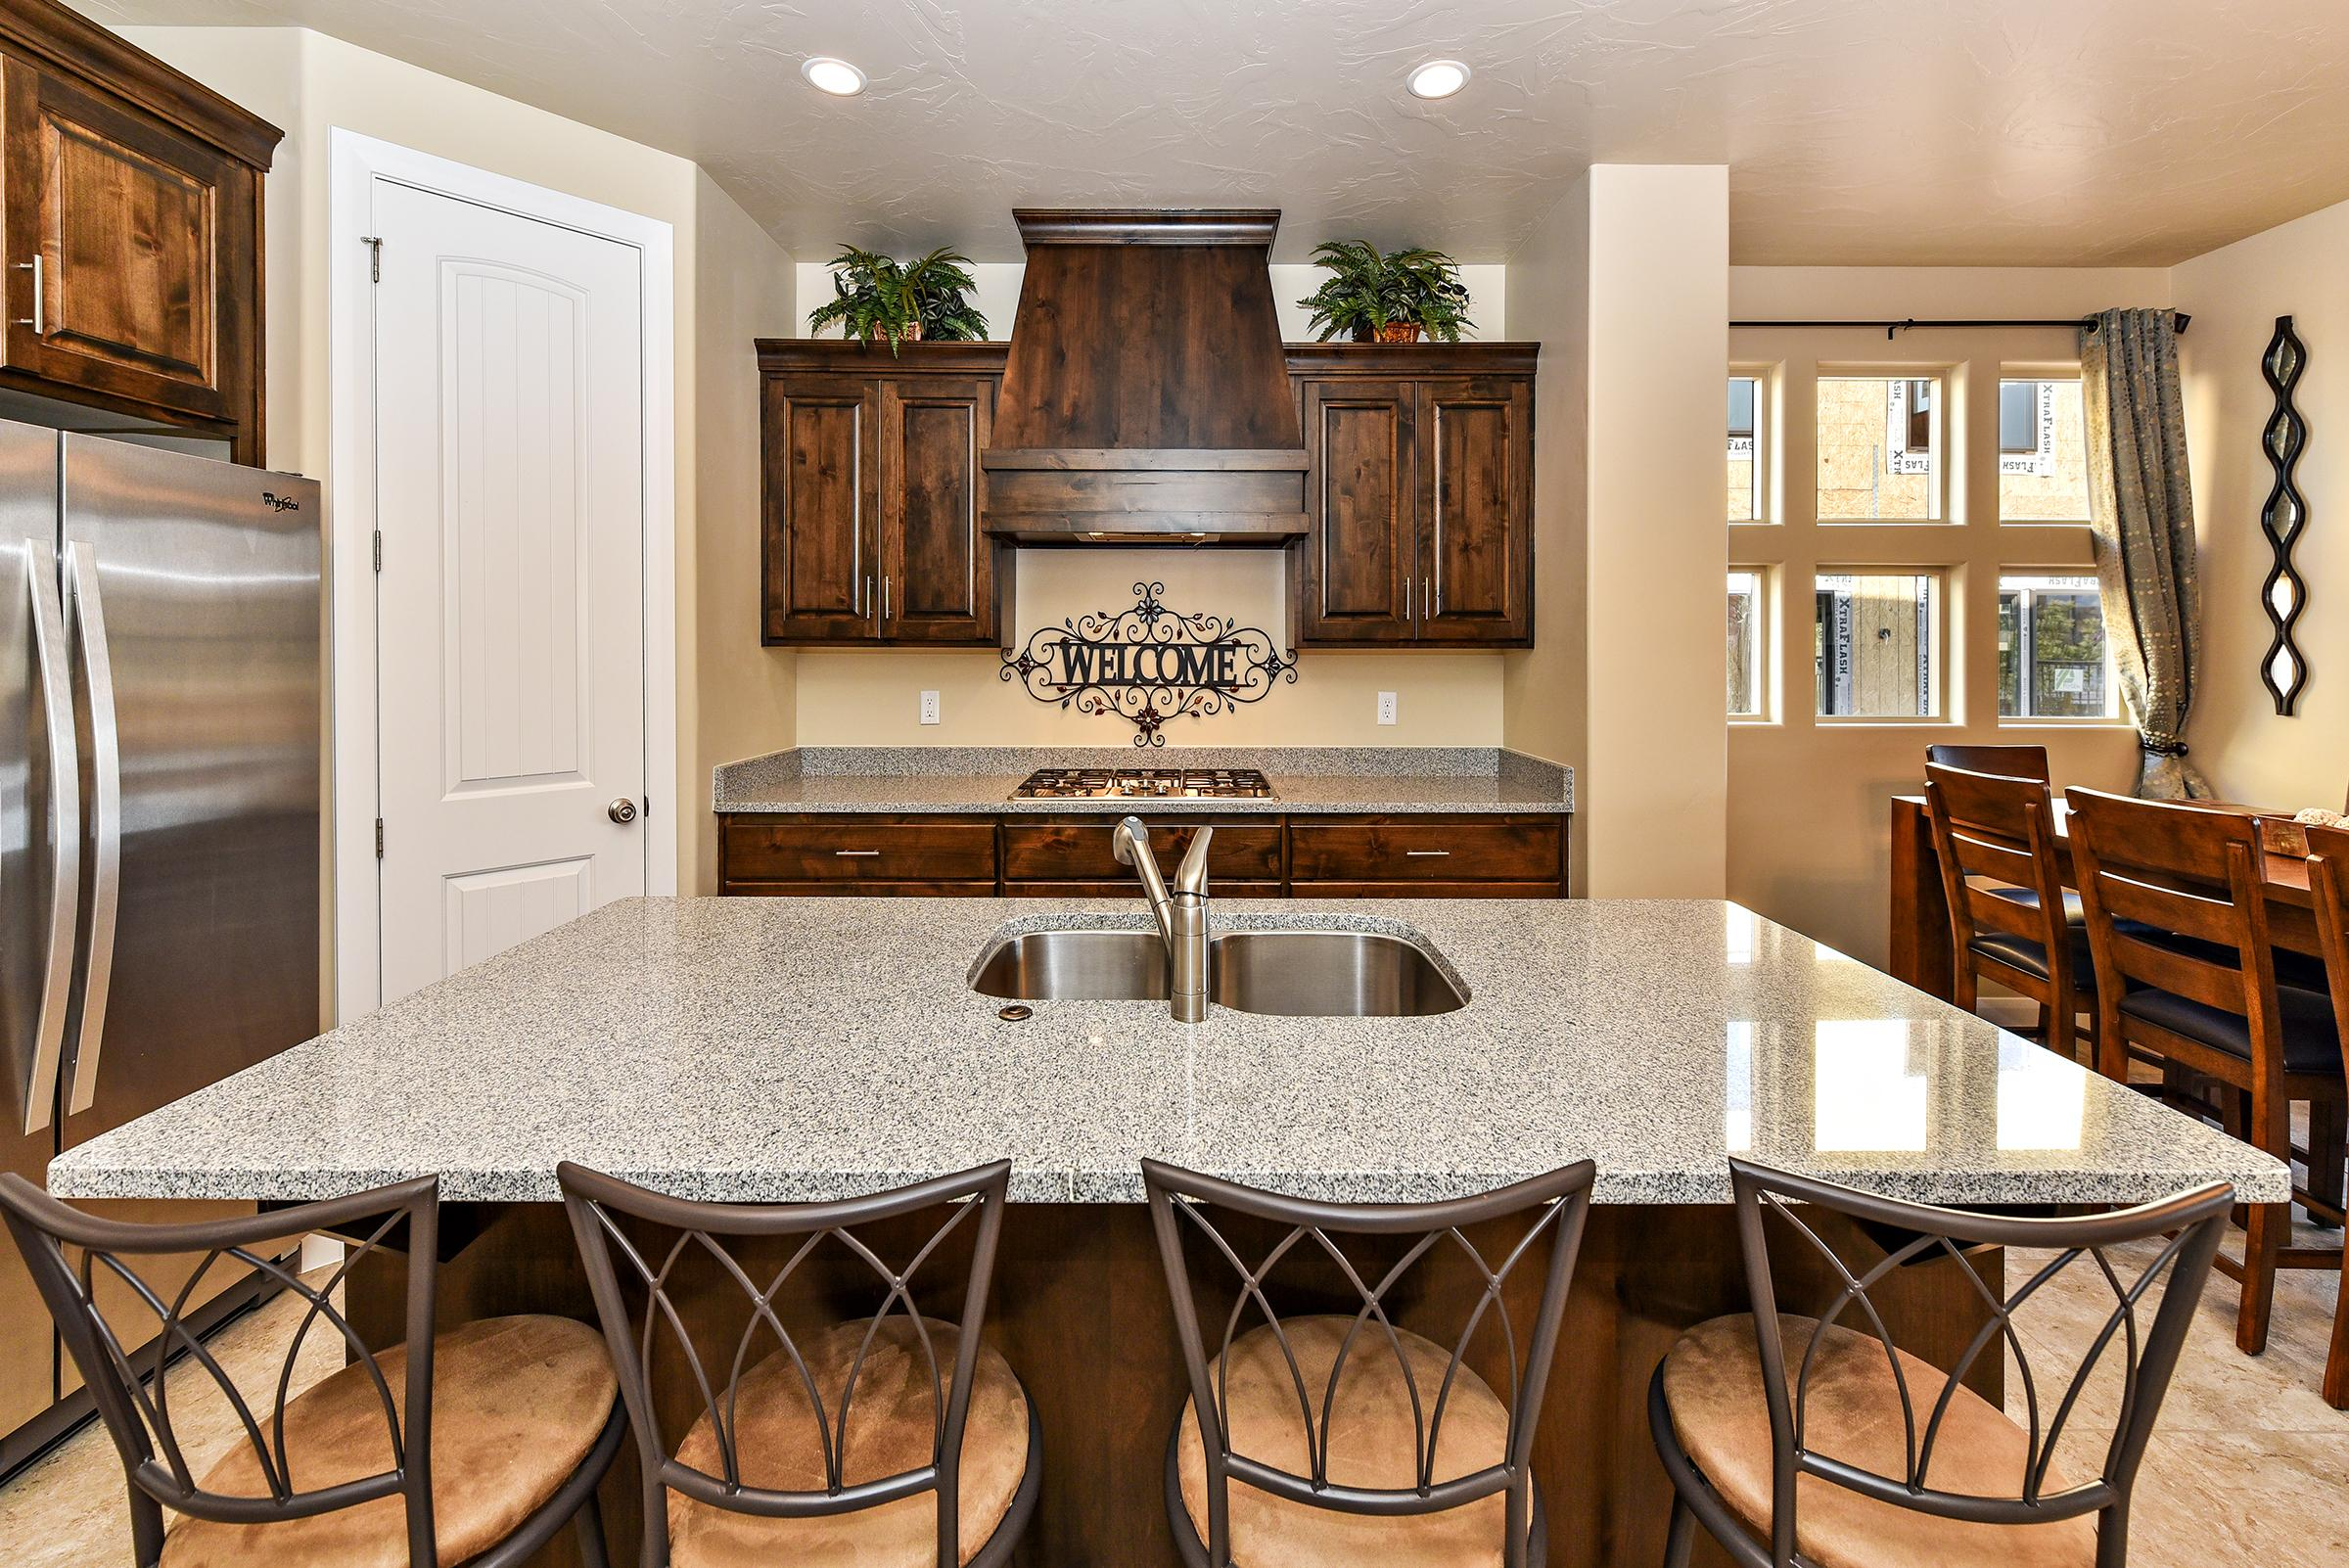 The Kitchen Island comfortably seats 4 adults and creates a great space for serving and preparing meals.